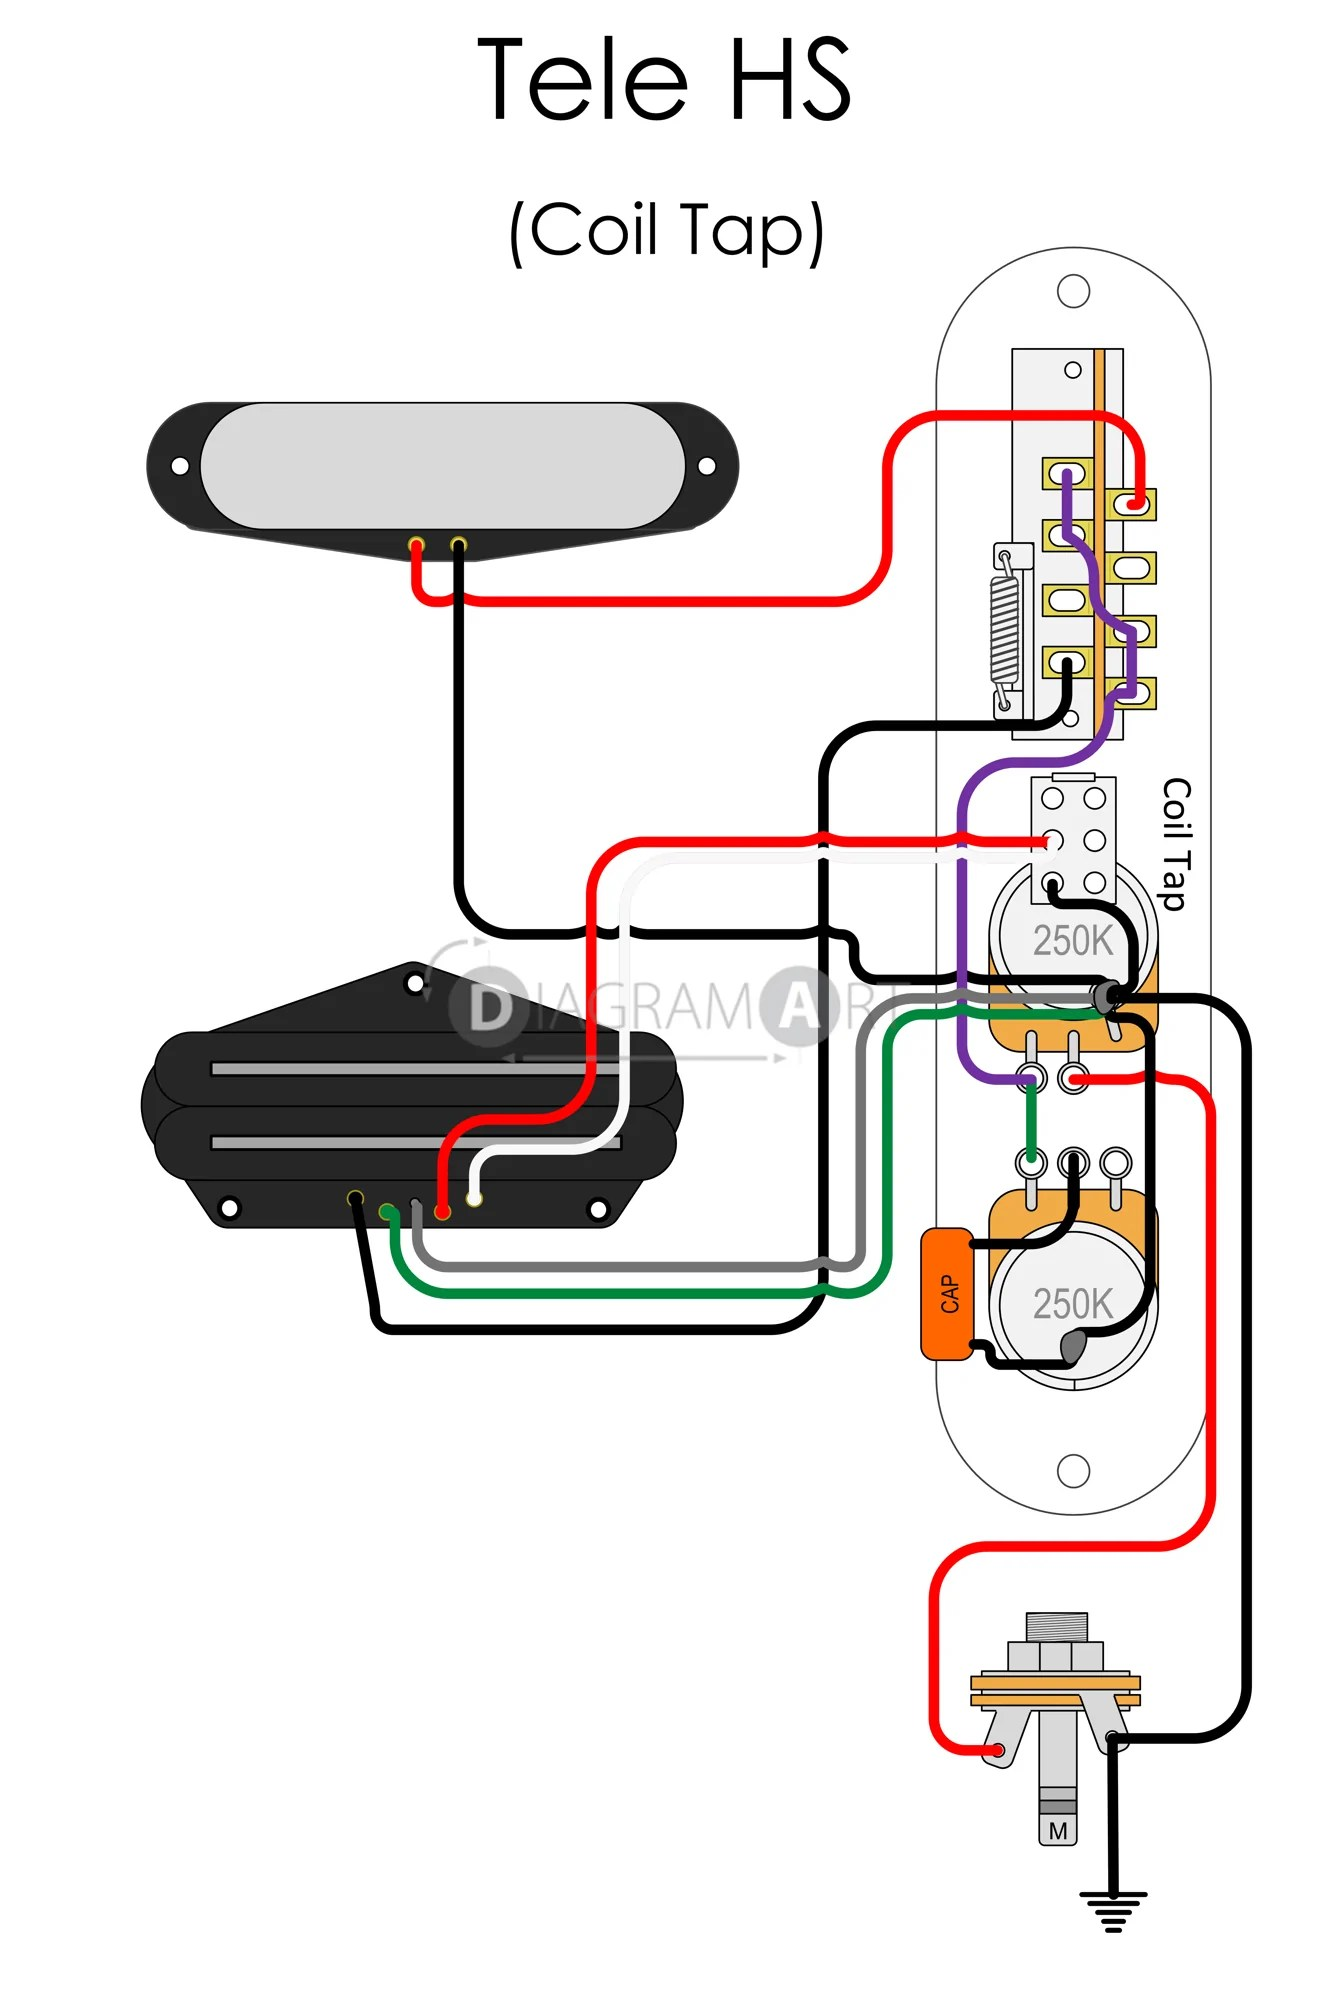 hight resolution of electric guitar wiring tele hs coil tap electric circuit humbucker wiring diagram coil tap diagram